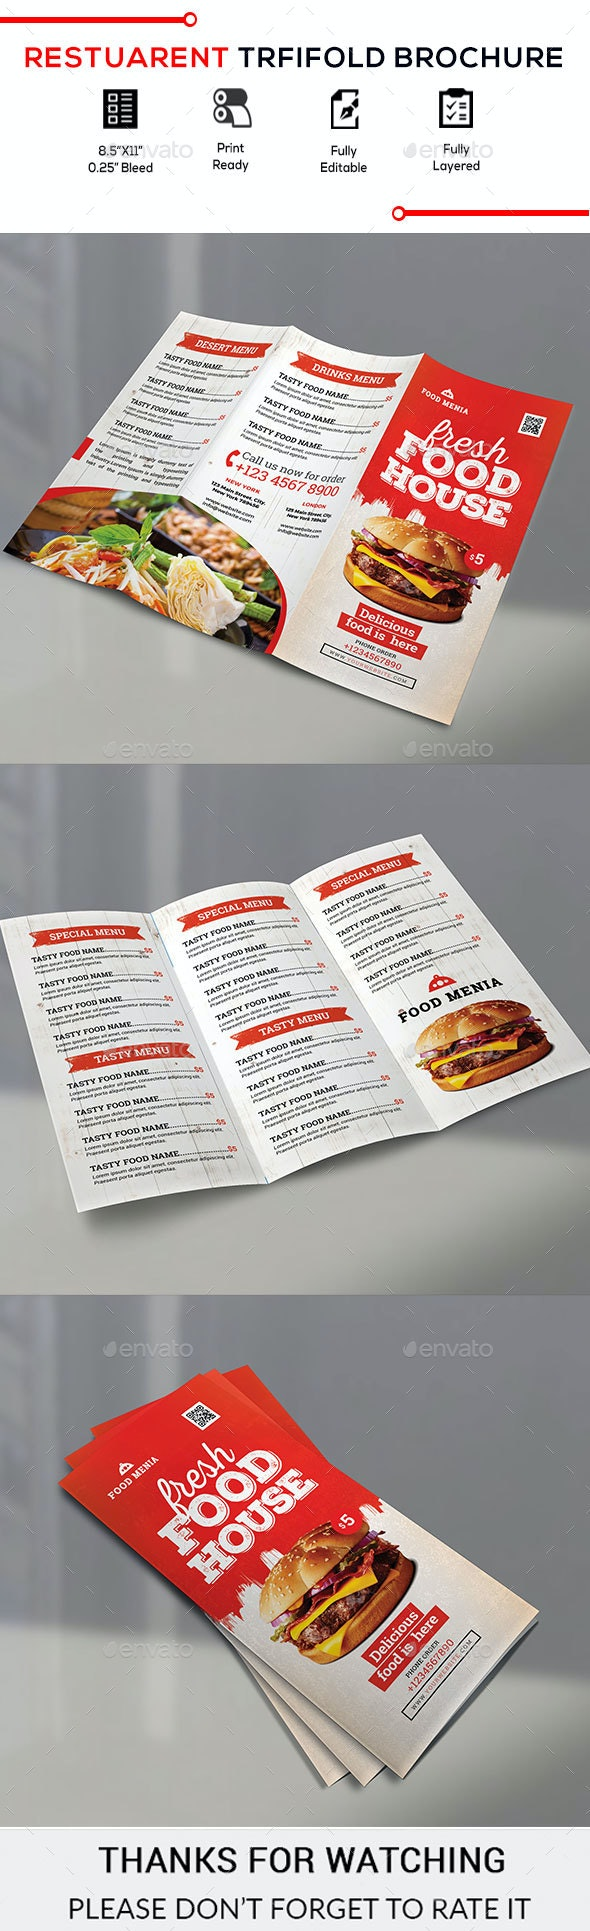 Trifold Food Brochure - Brochures Print Templates